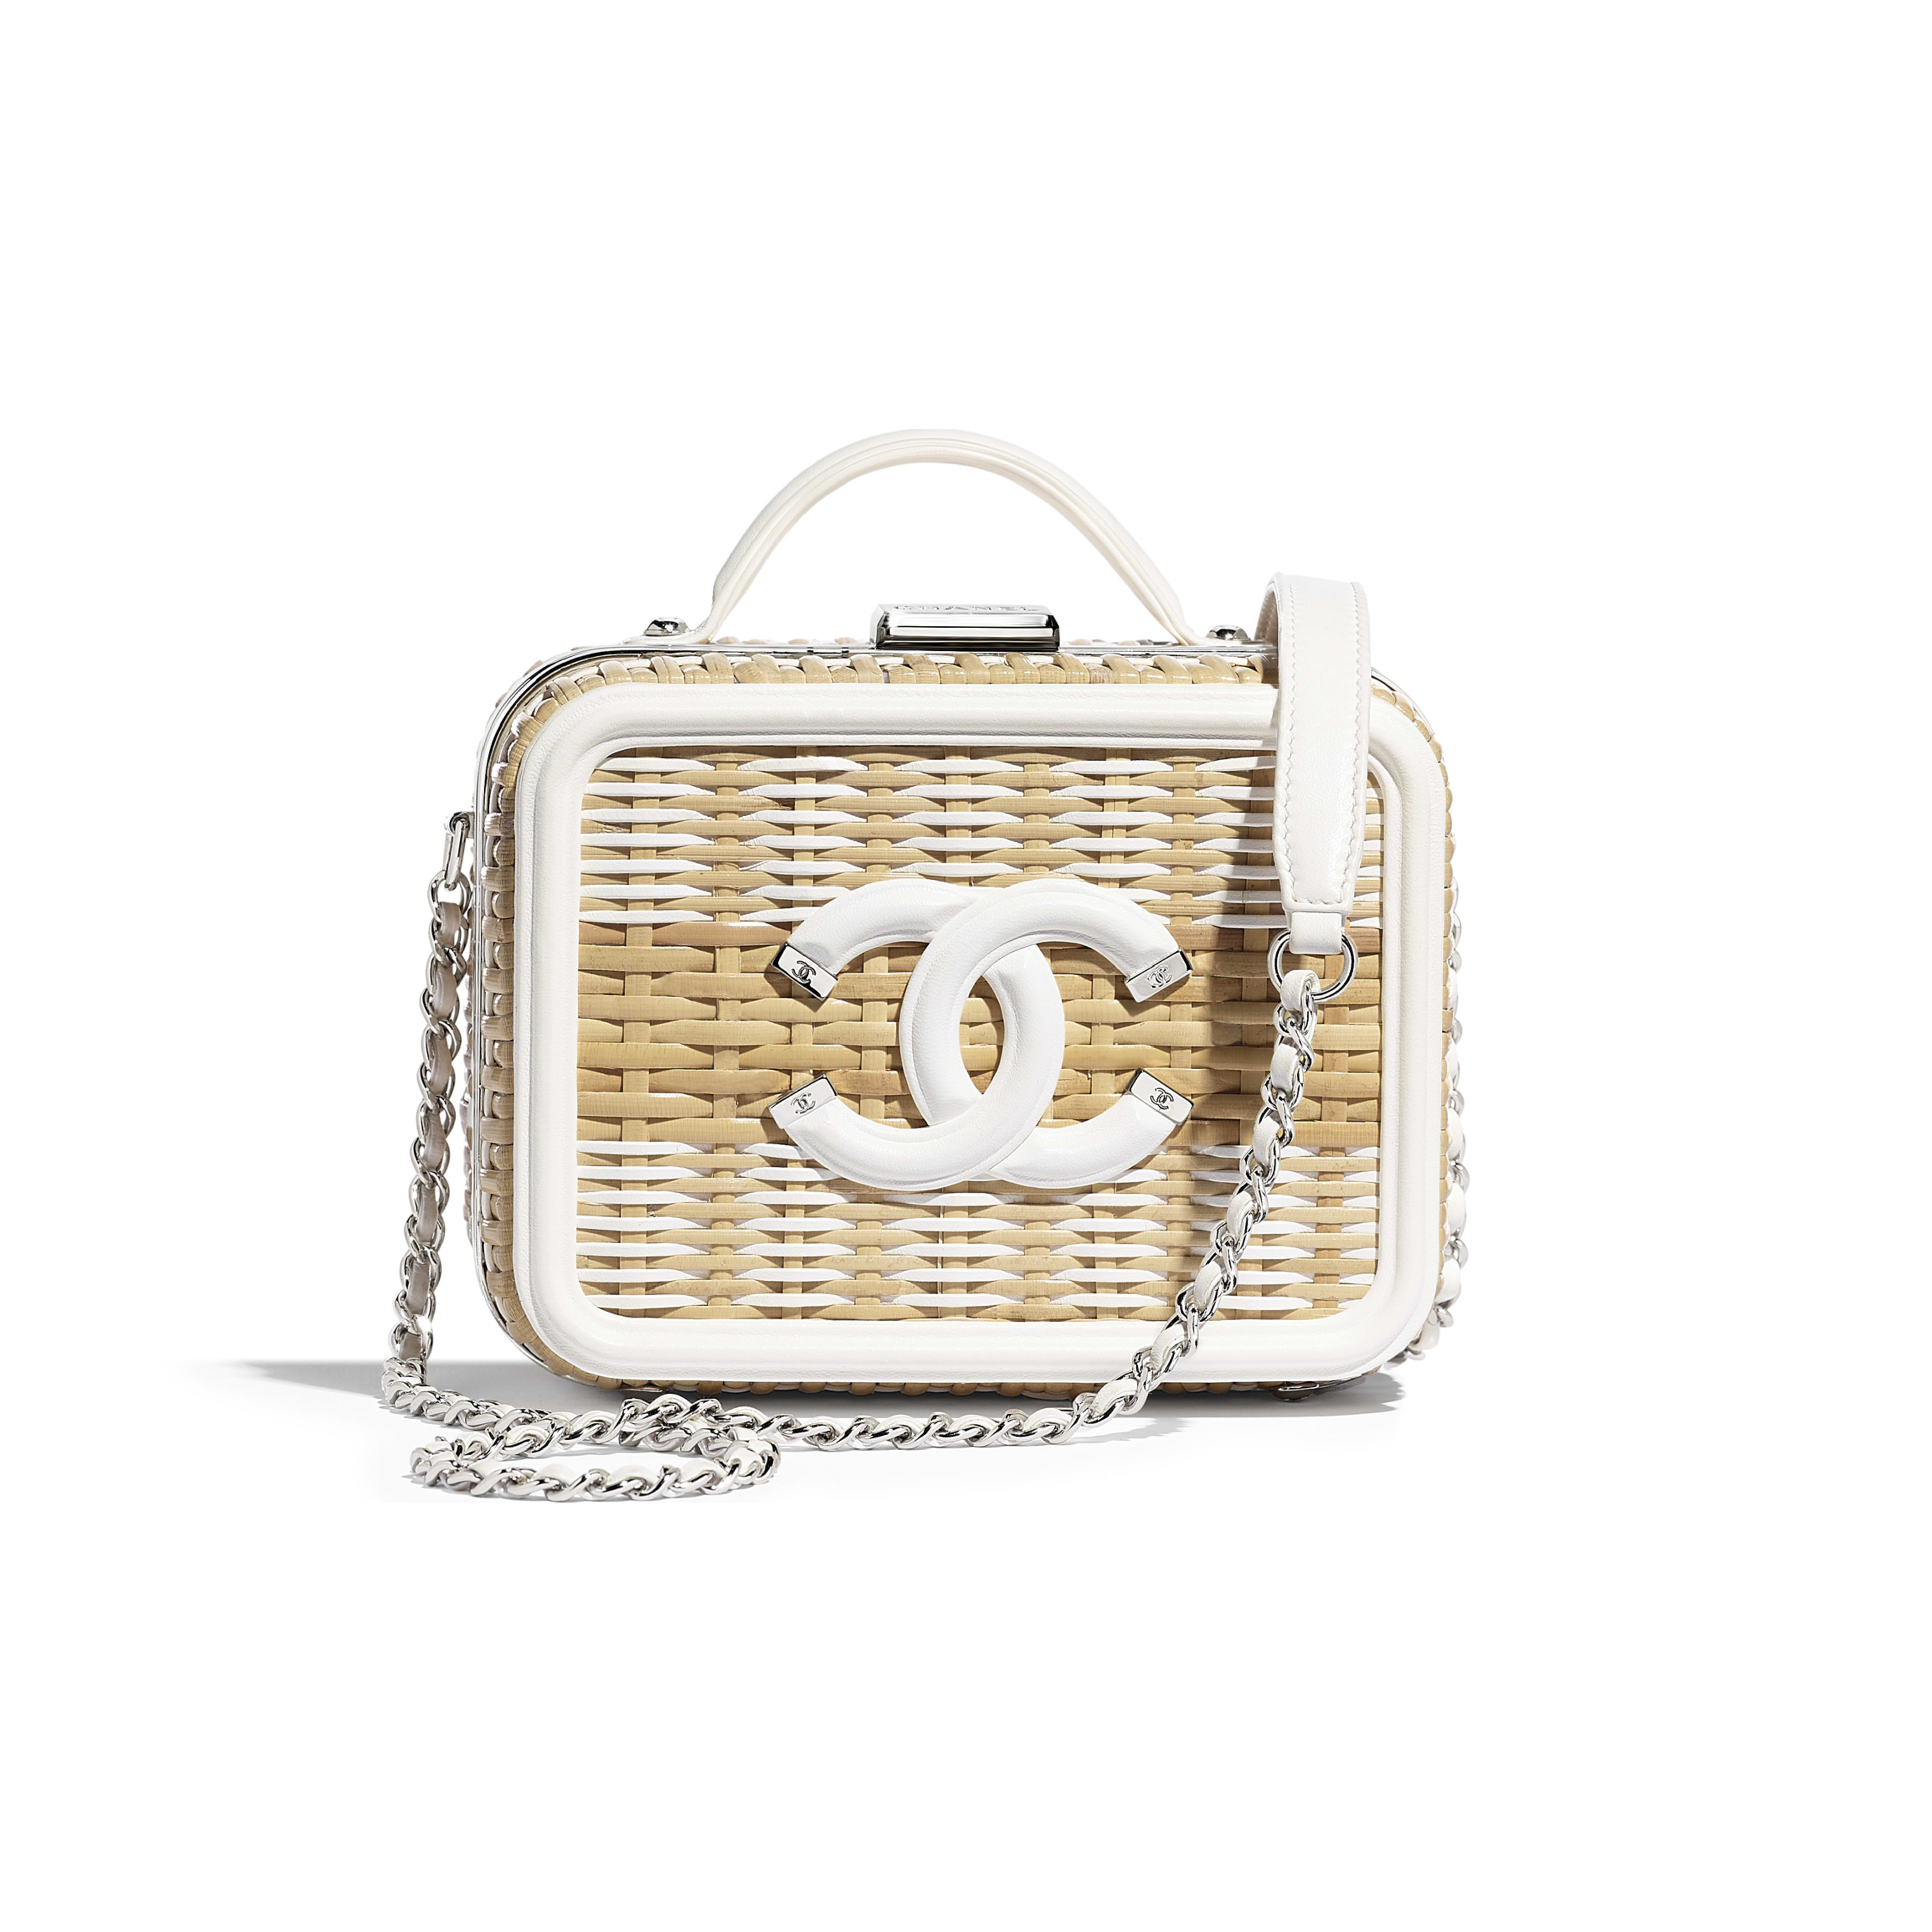 Small Vanity Case - Beige & White - Rattan, Calfskin & Silver-Tone Metal - Default view - see full sized version